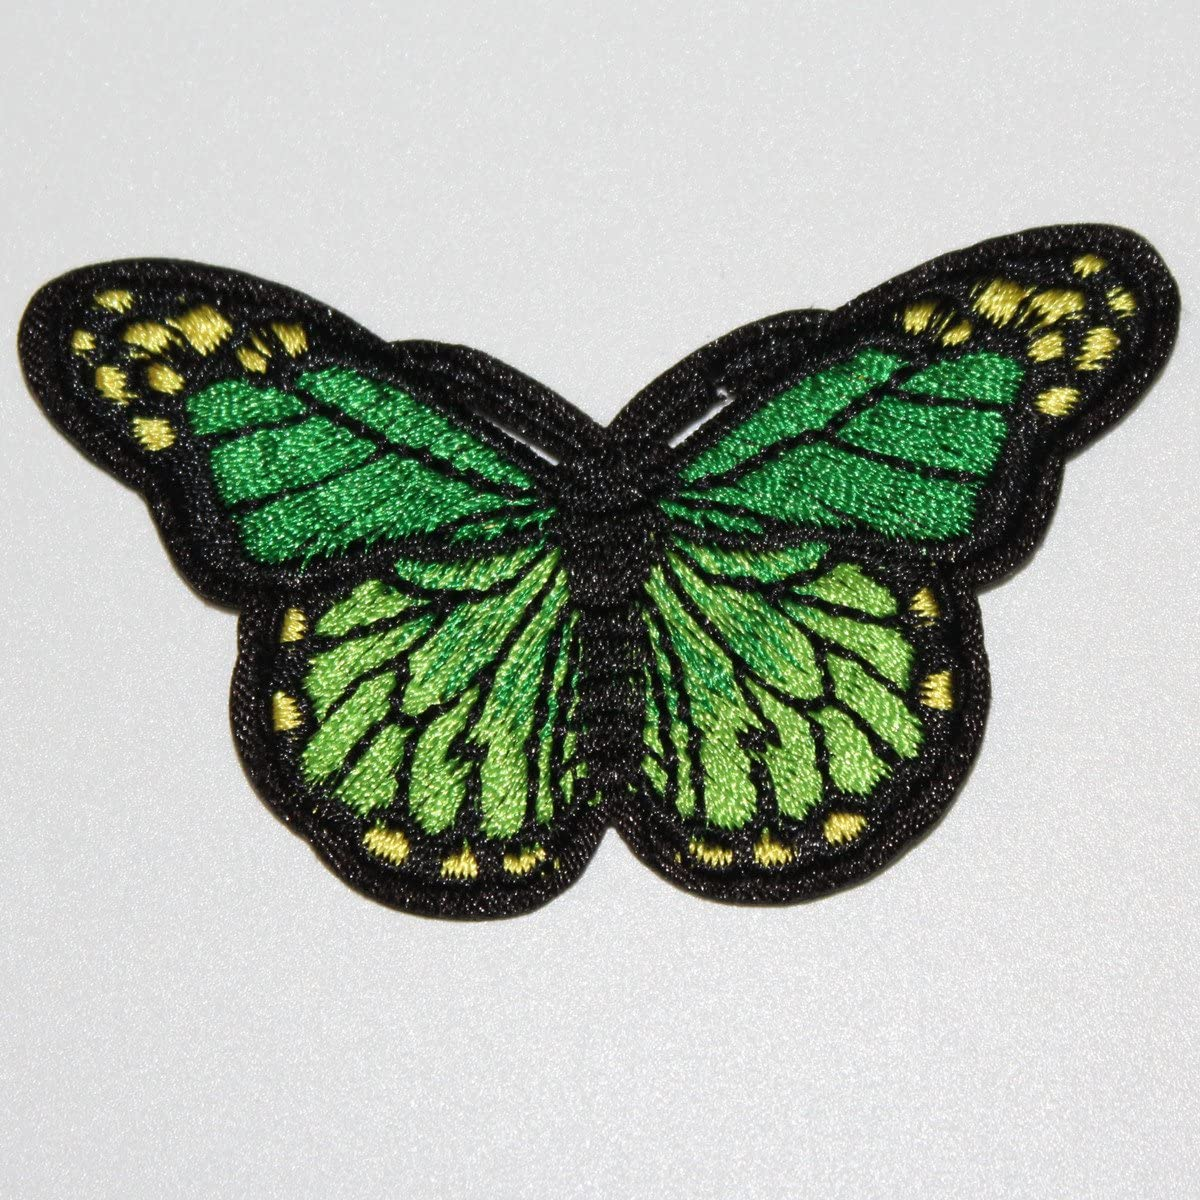 10Pcs Embroidery Butterfly Fabric Iron On Sew On Patch Badge Applique